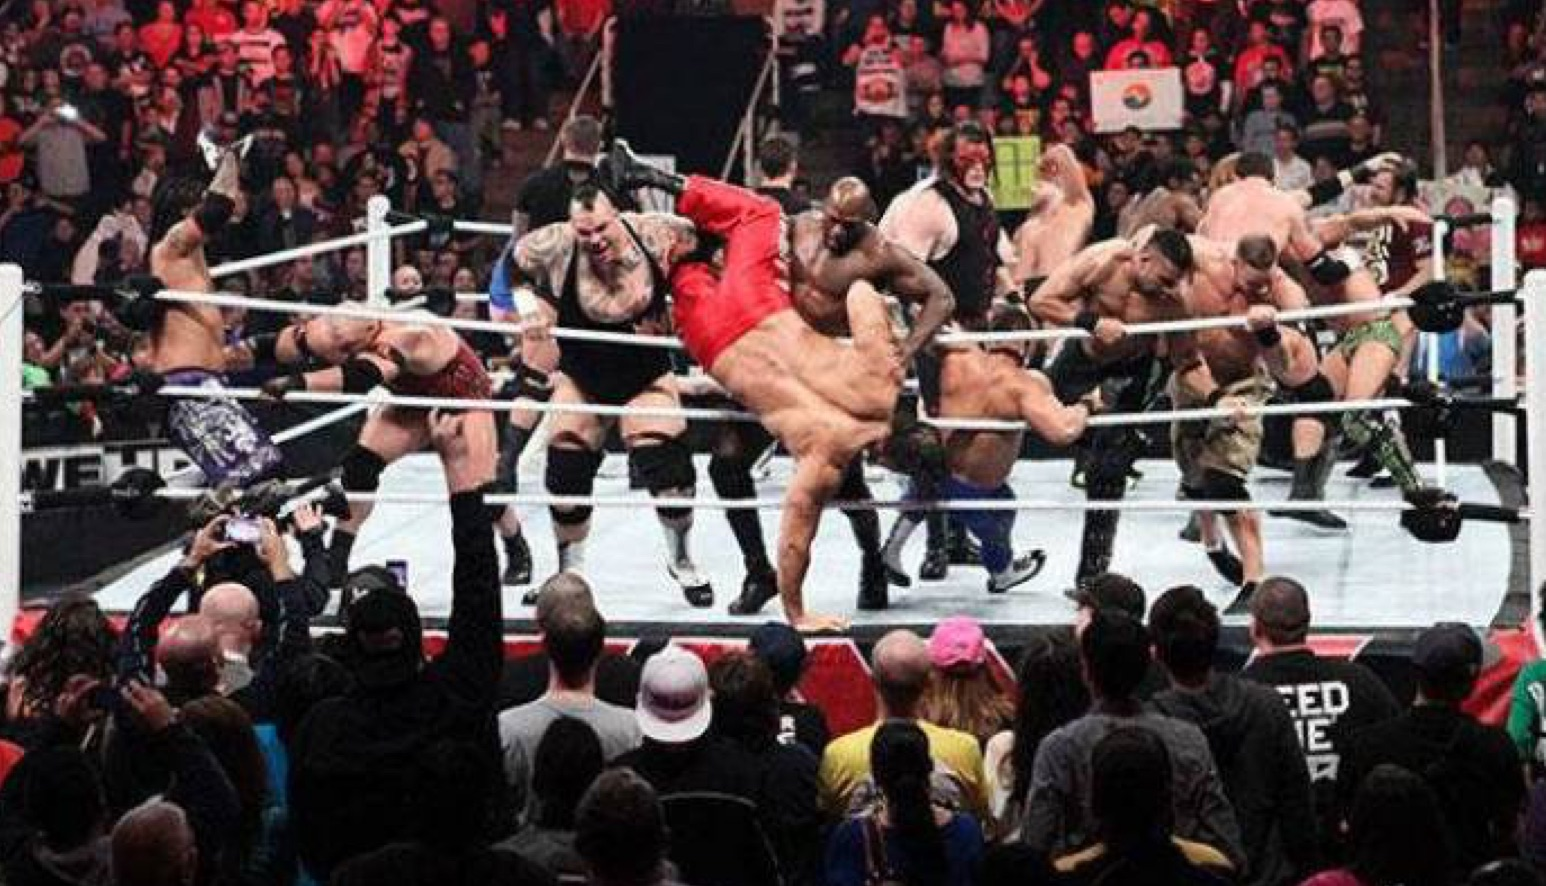 Royal rumble – italian edition